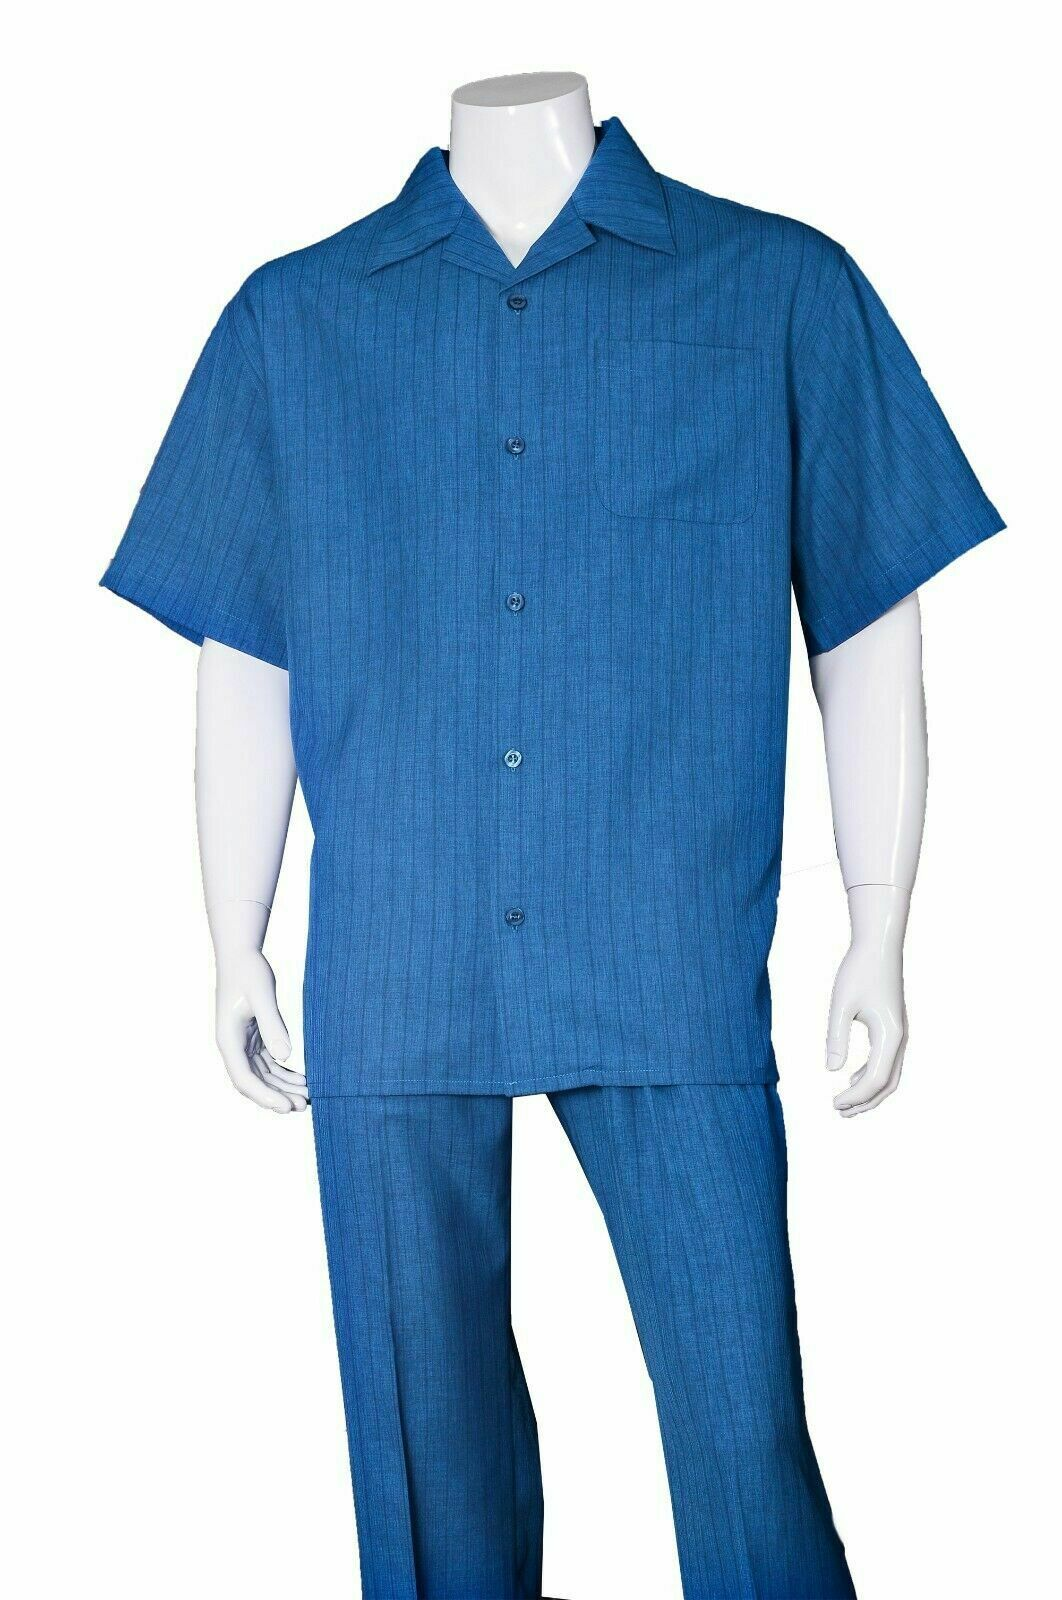 Fortino Landi Walking Set M2971-Blue - Church Suits For Less